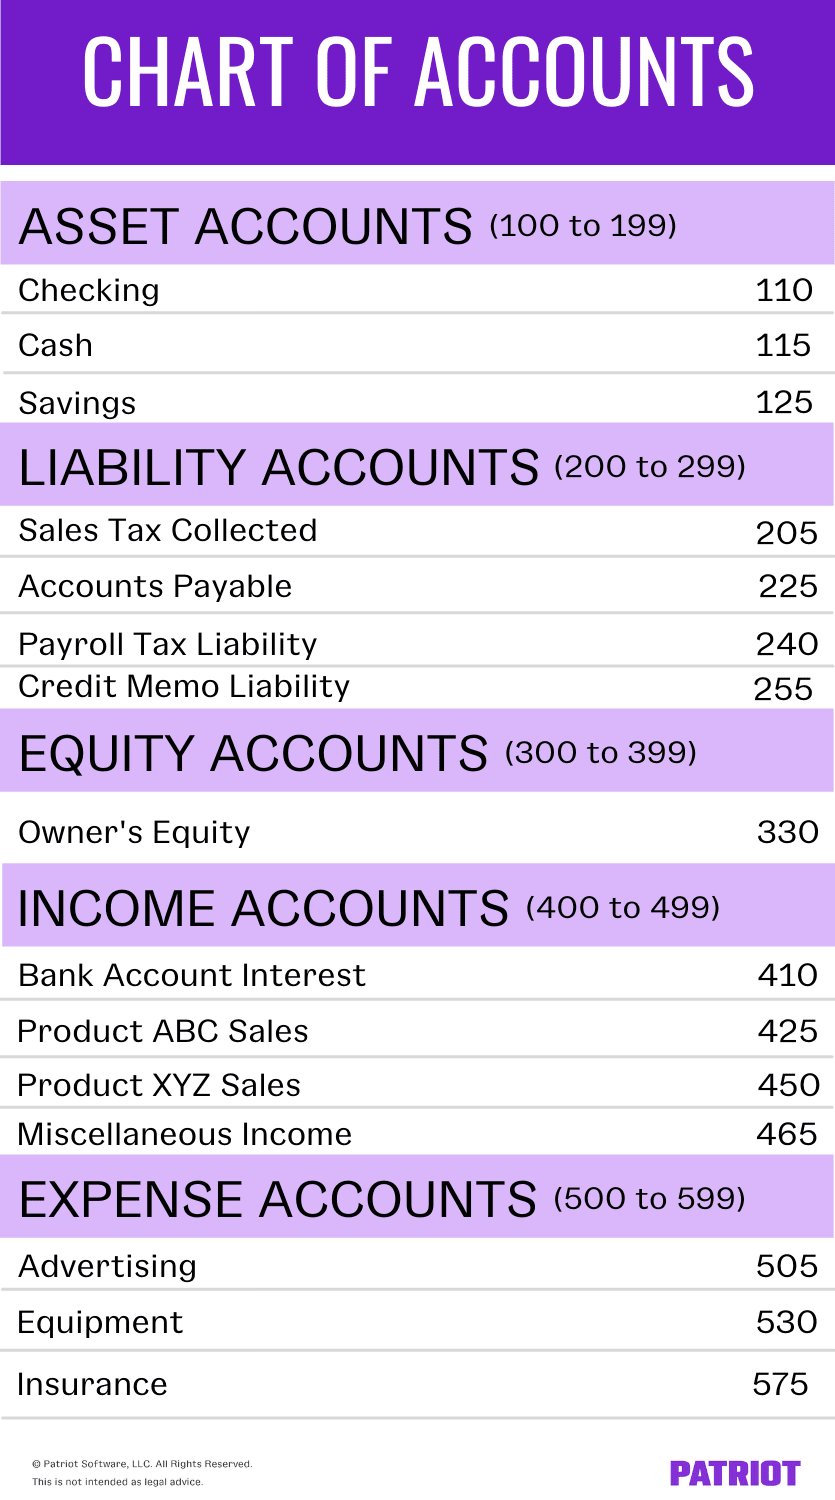 Chart of accounts example